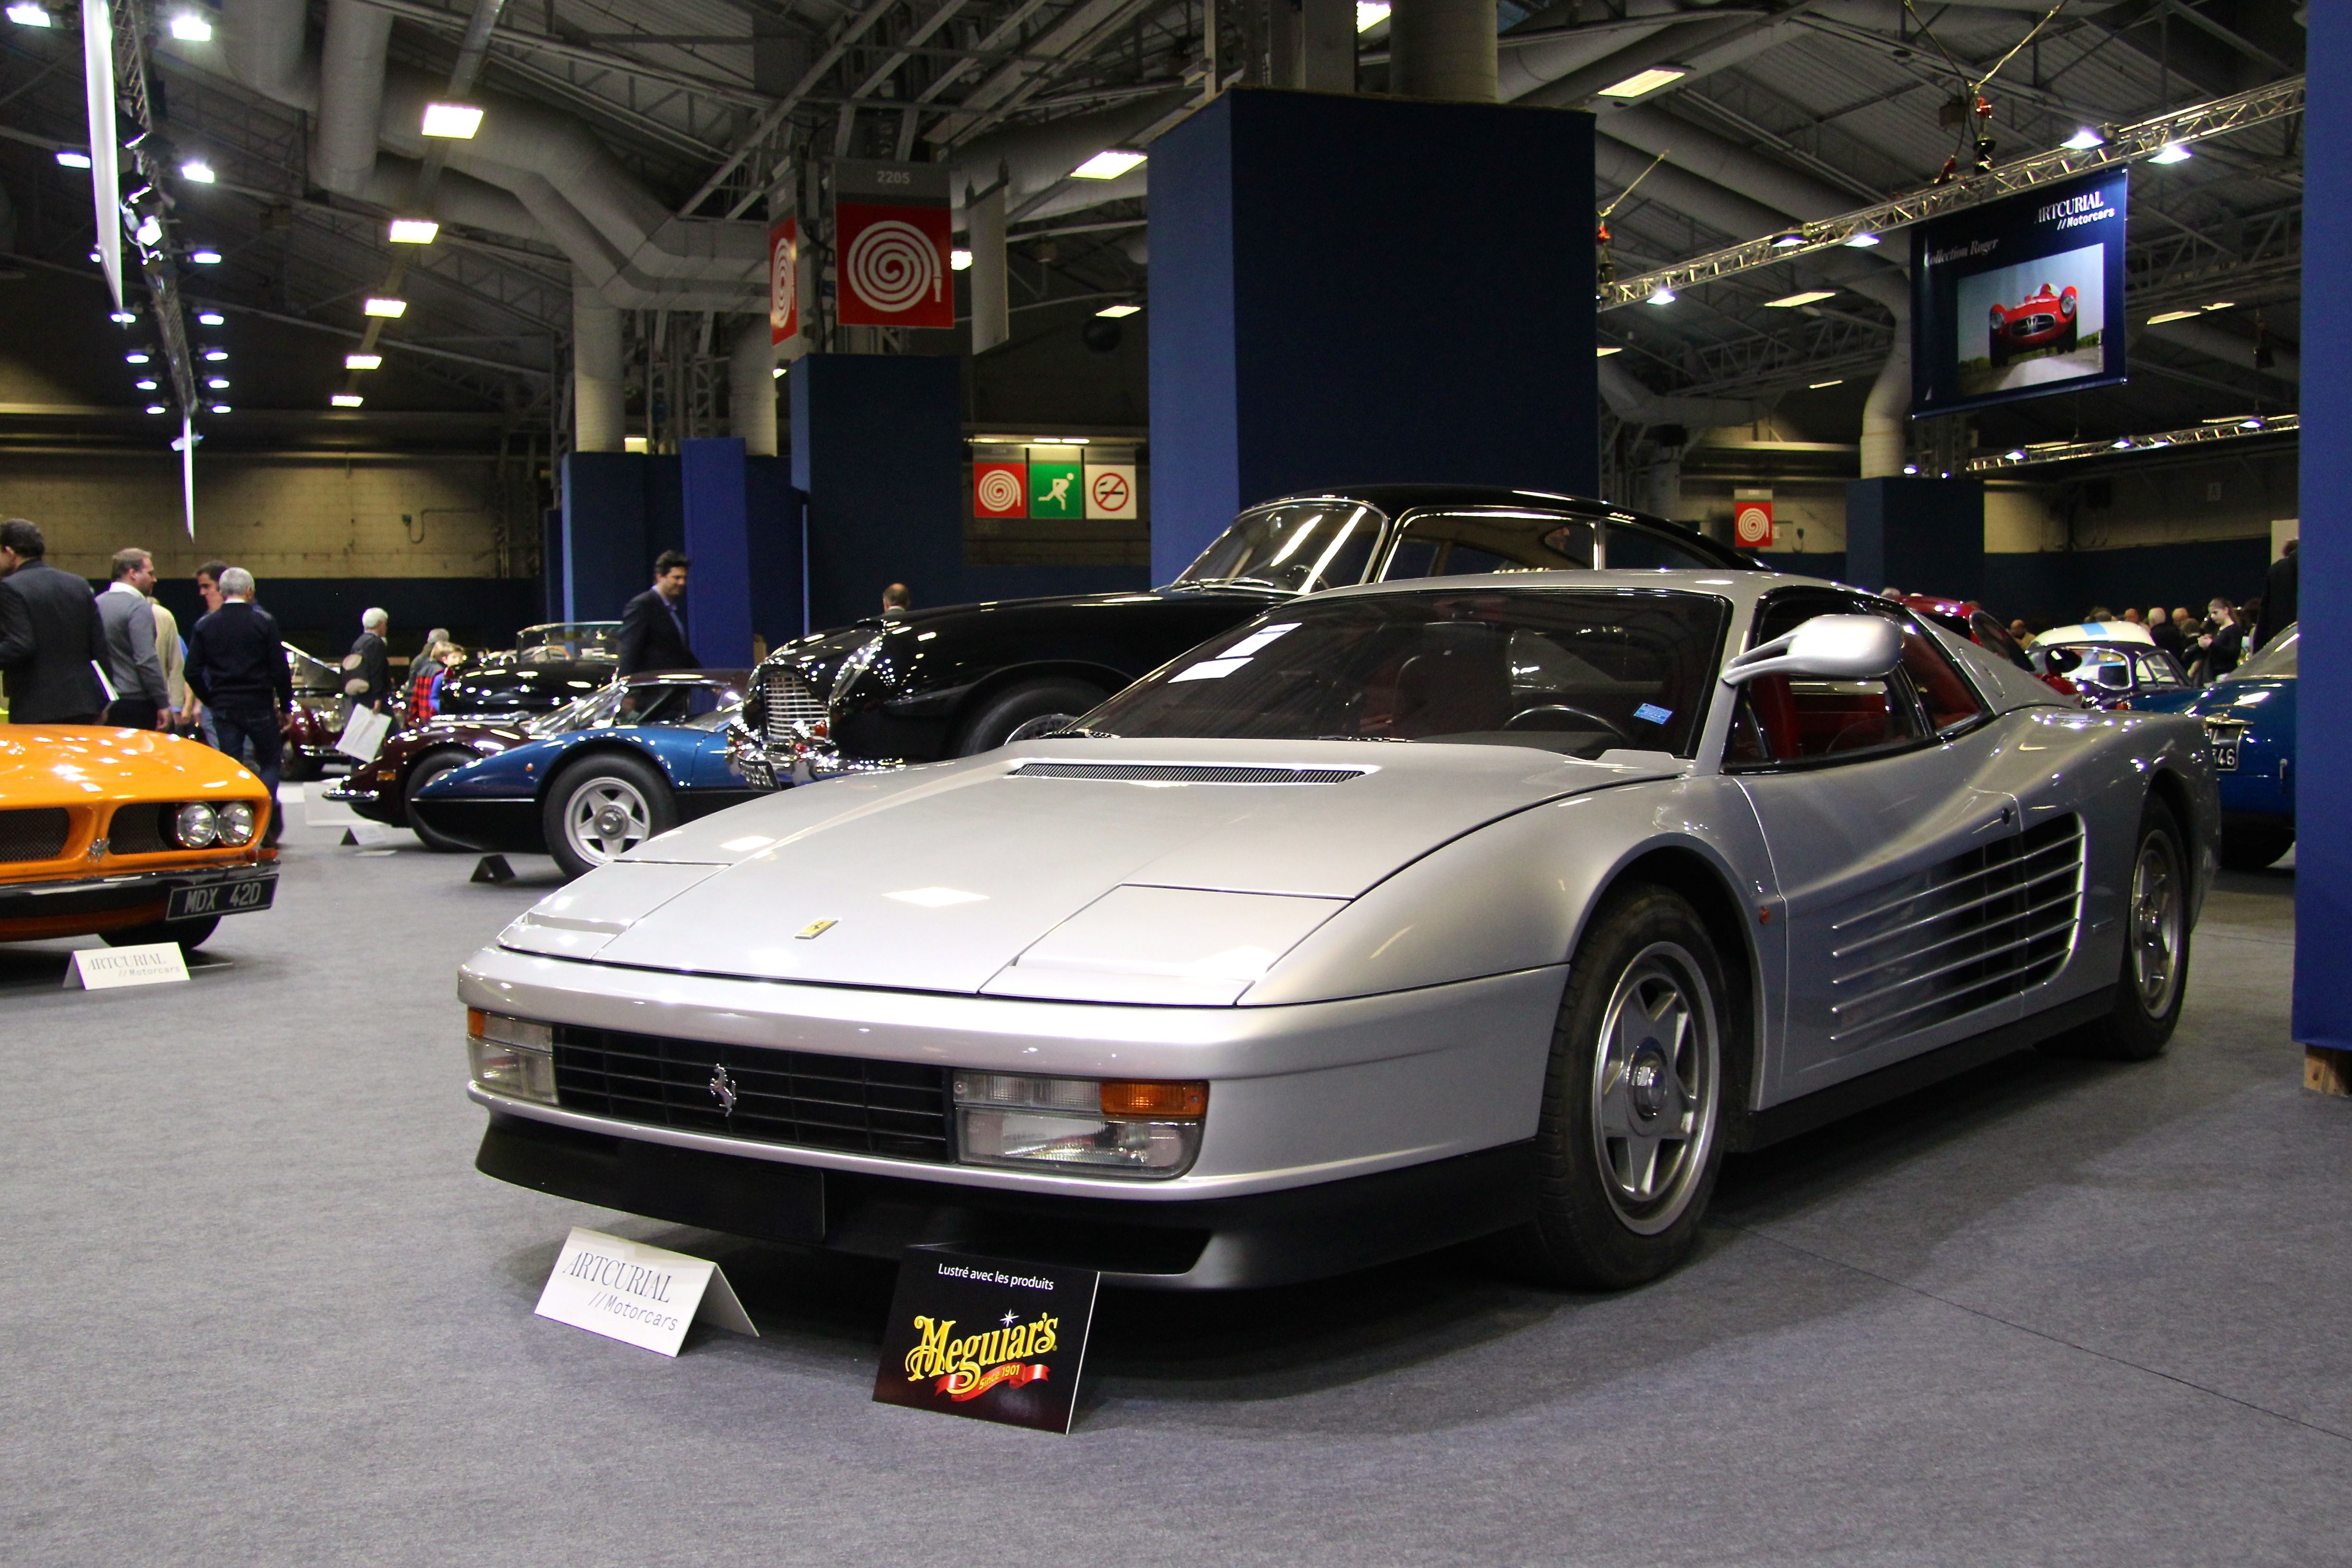 Ferrari Testarossa - 1986 - Retromobile - Artcurial - 2018 - photo Ludo Ferrari